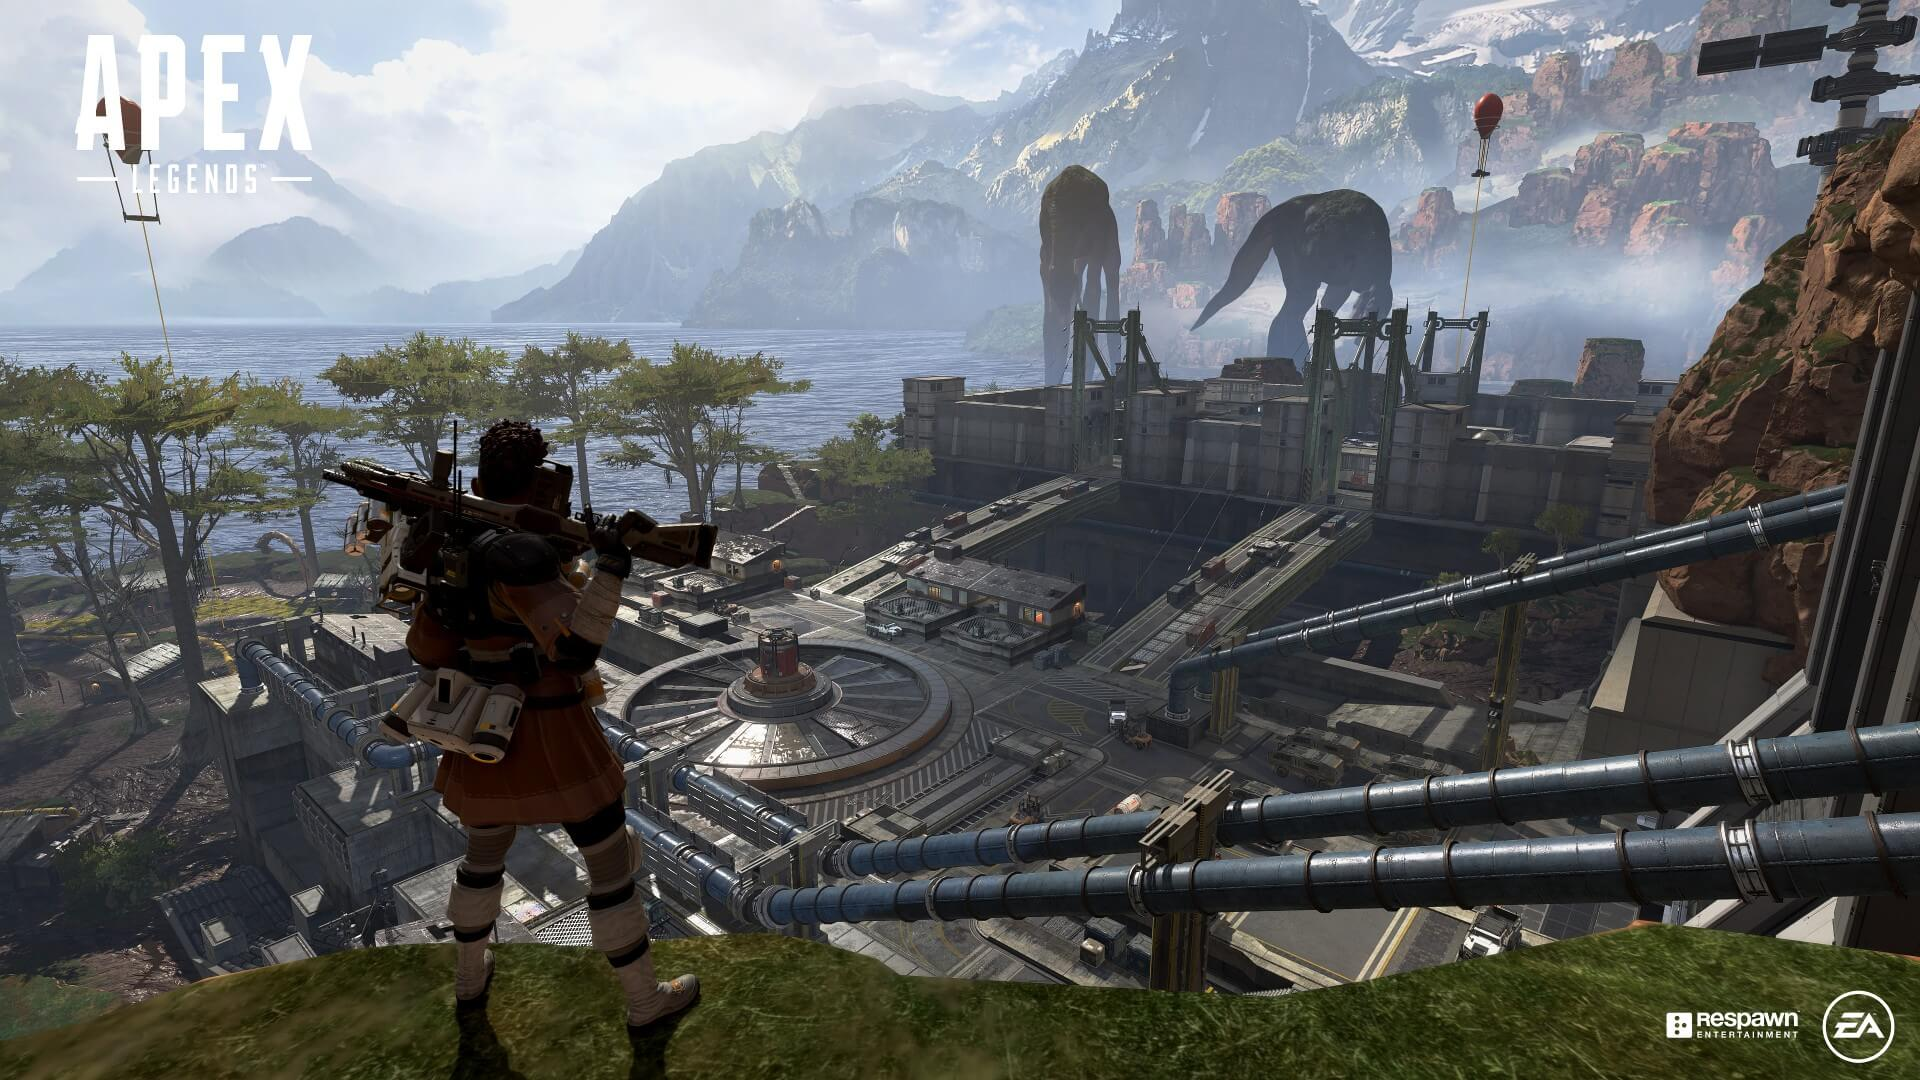 Apex Legends 1 1 1 Download - TechSpot